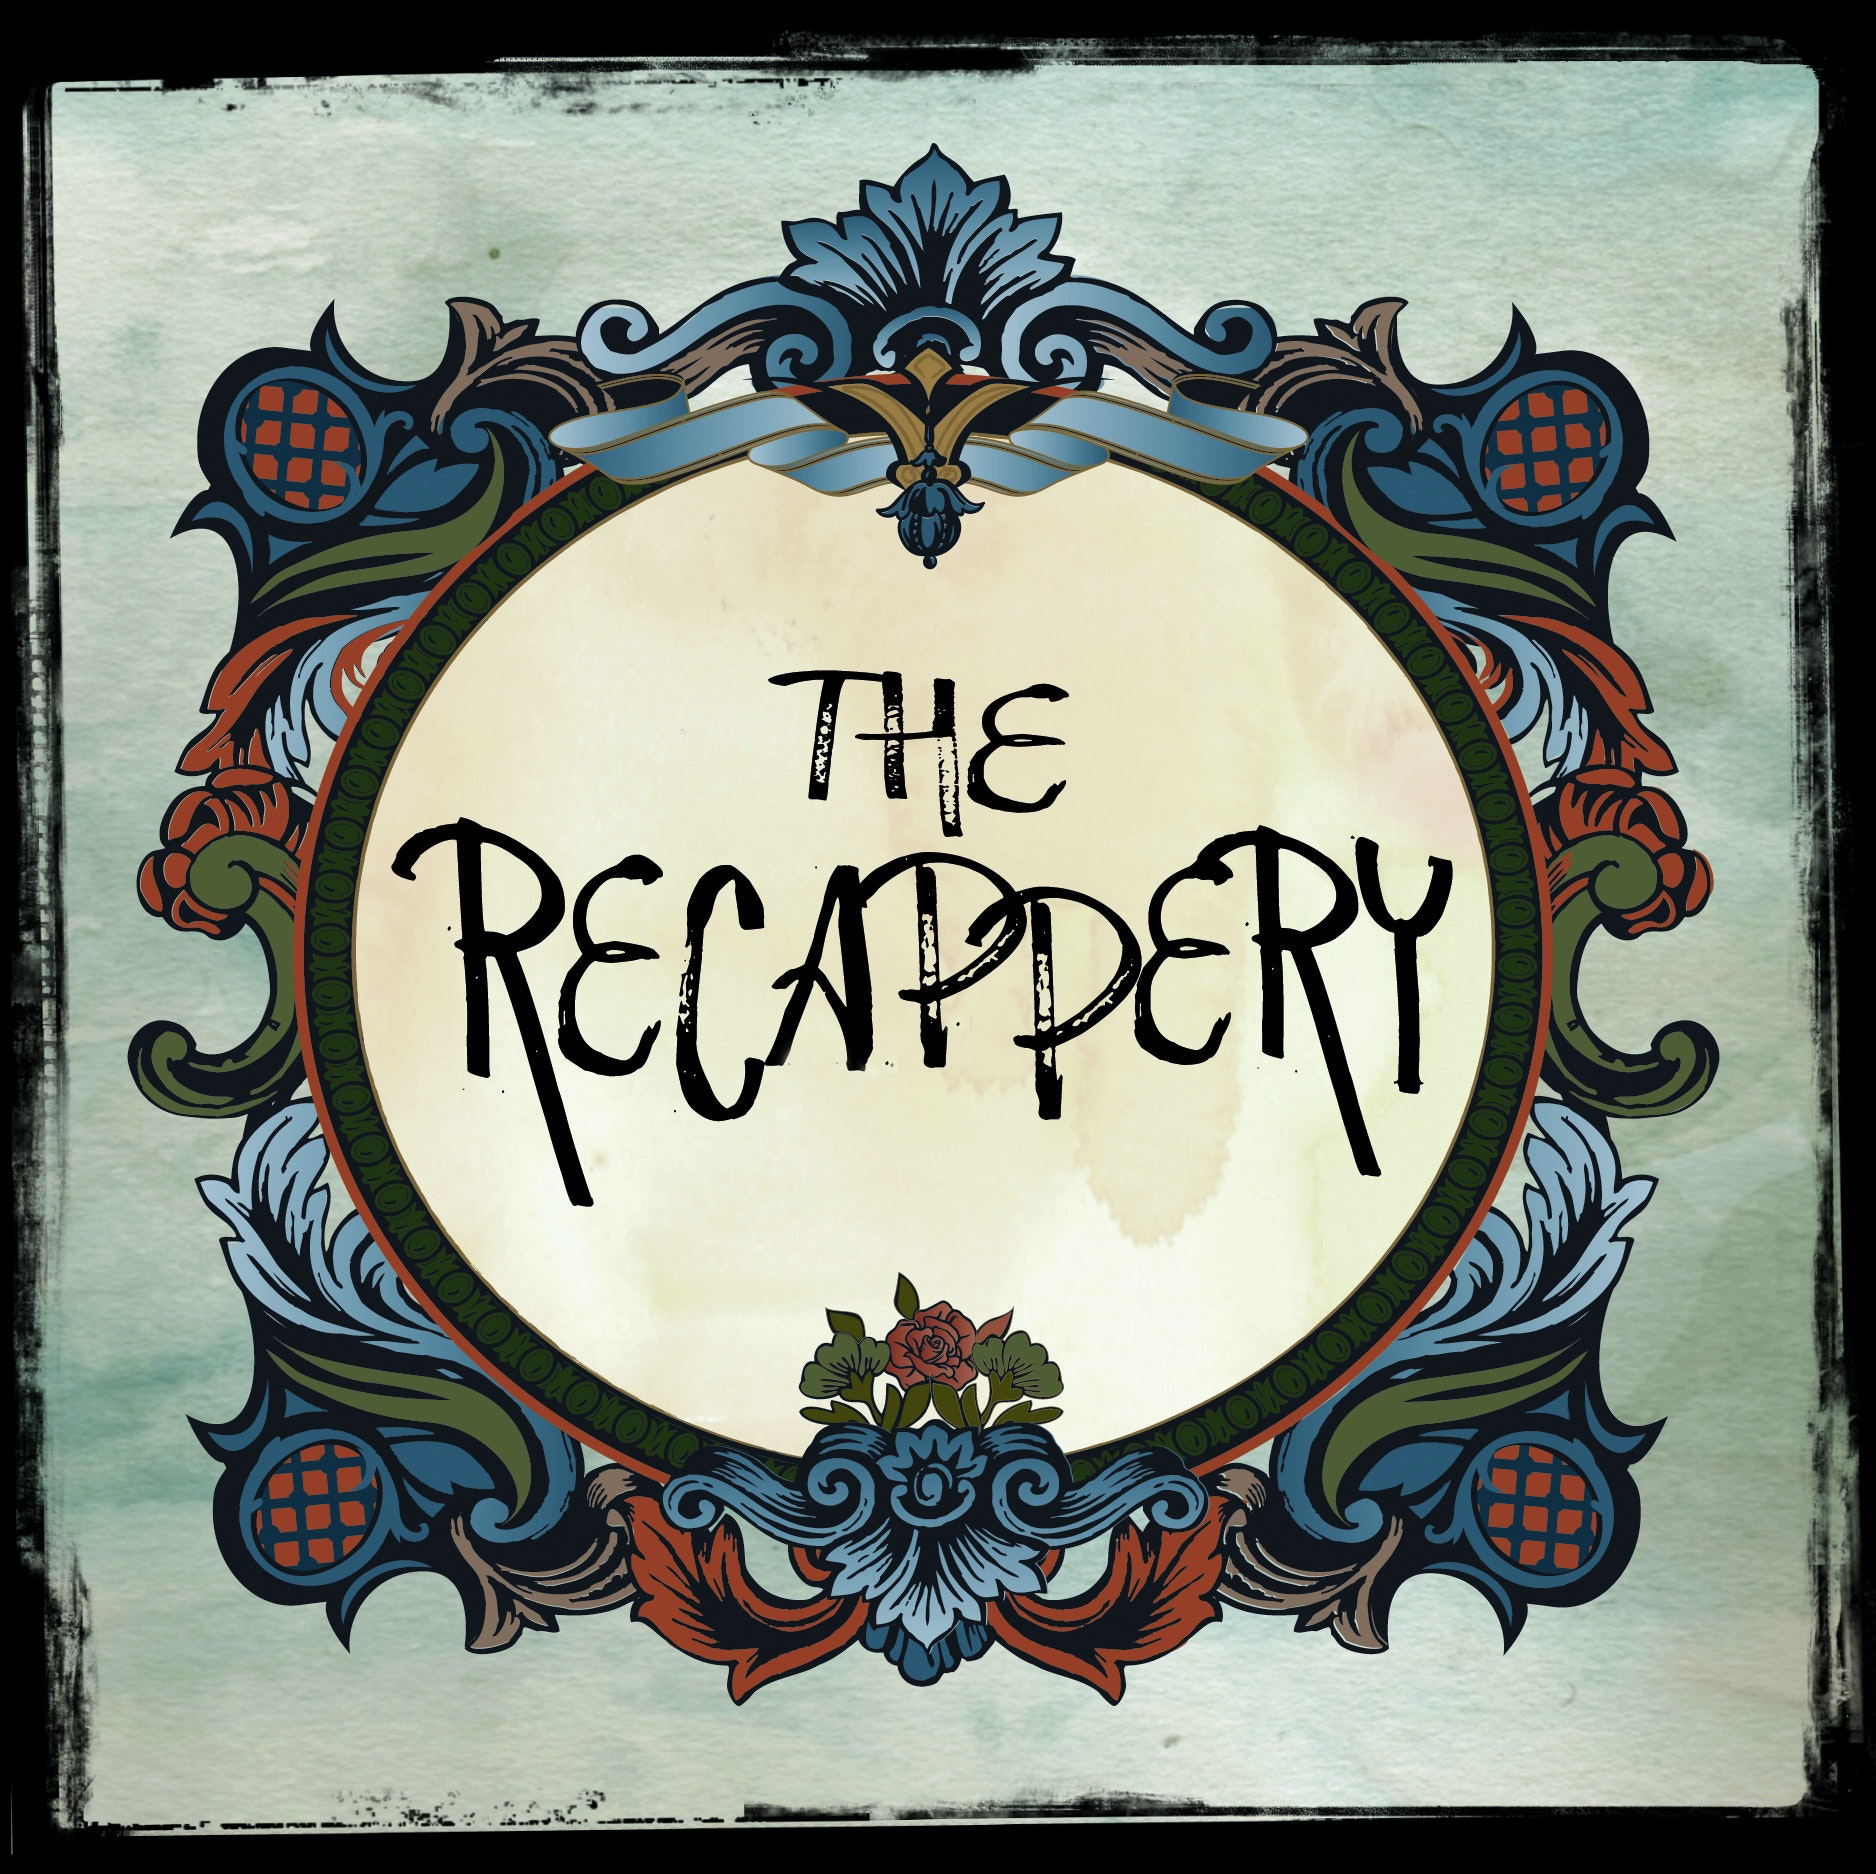 The Recappery